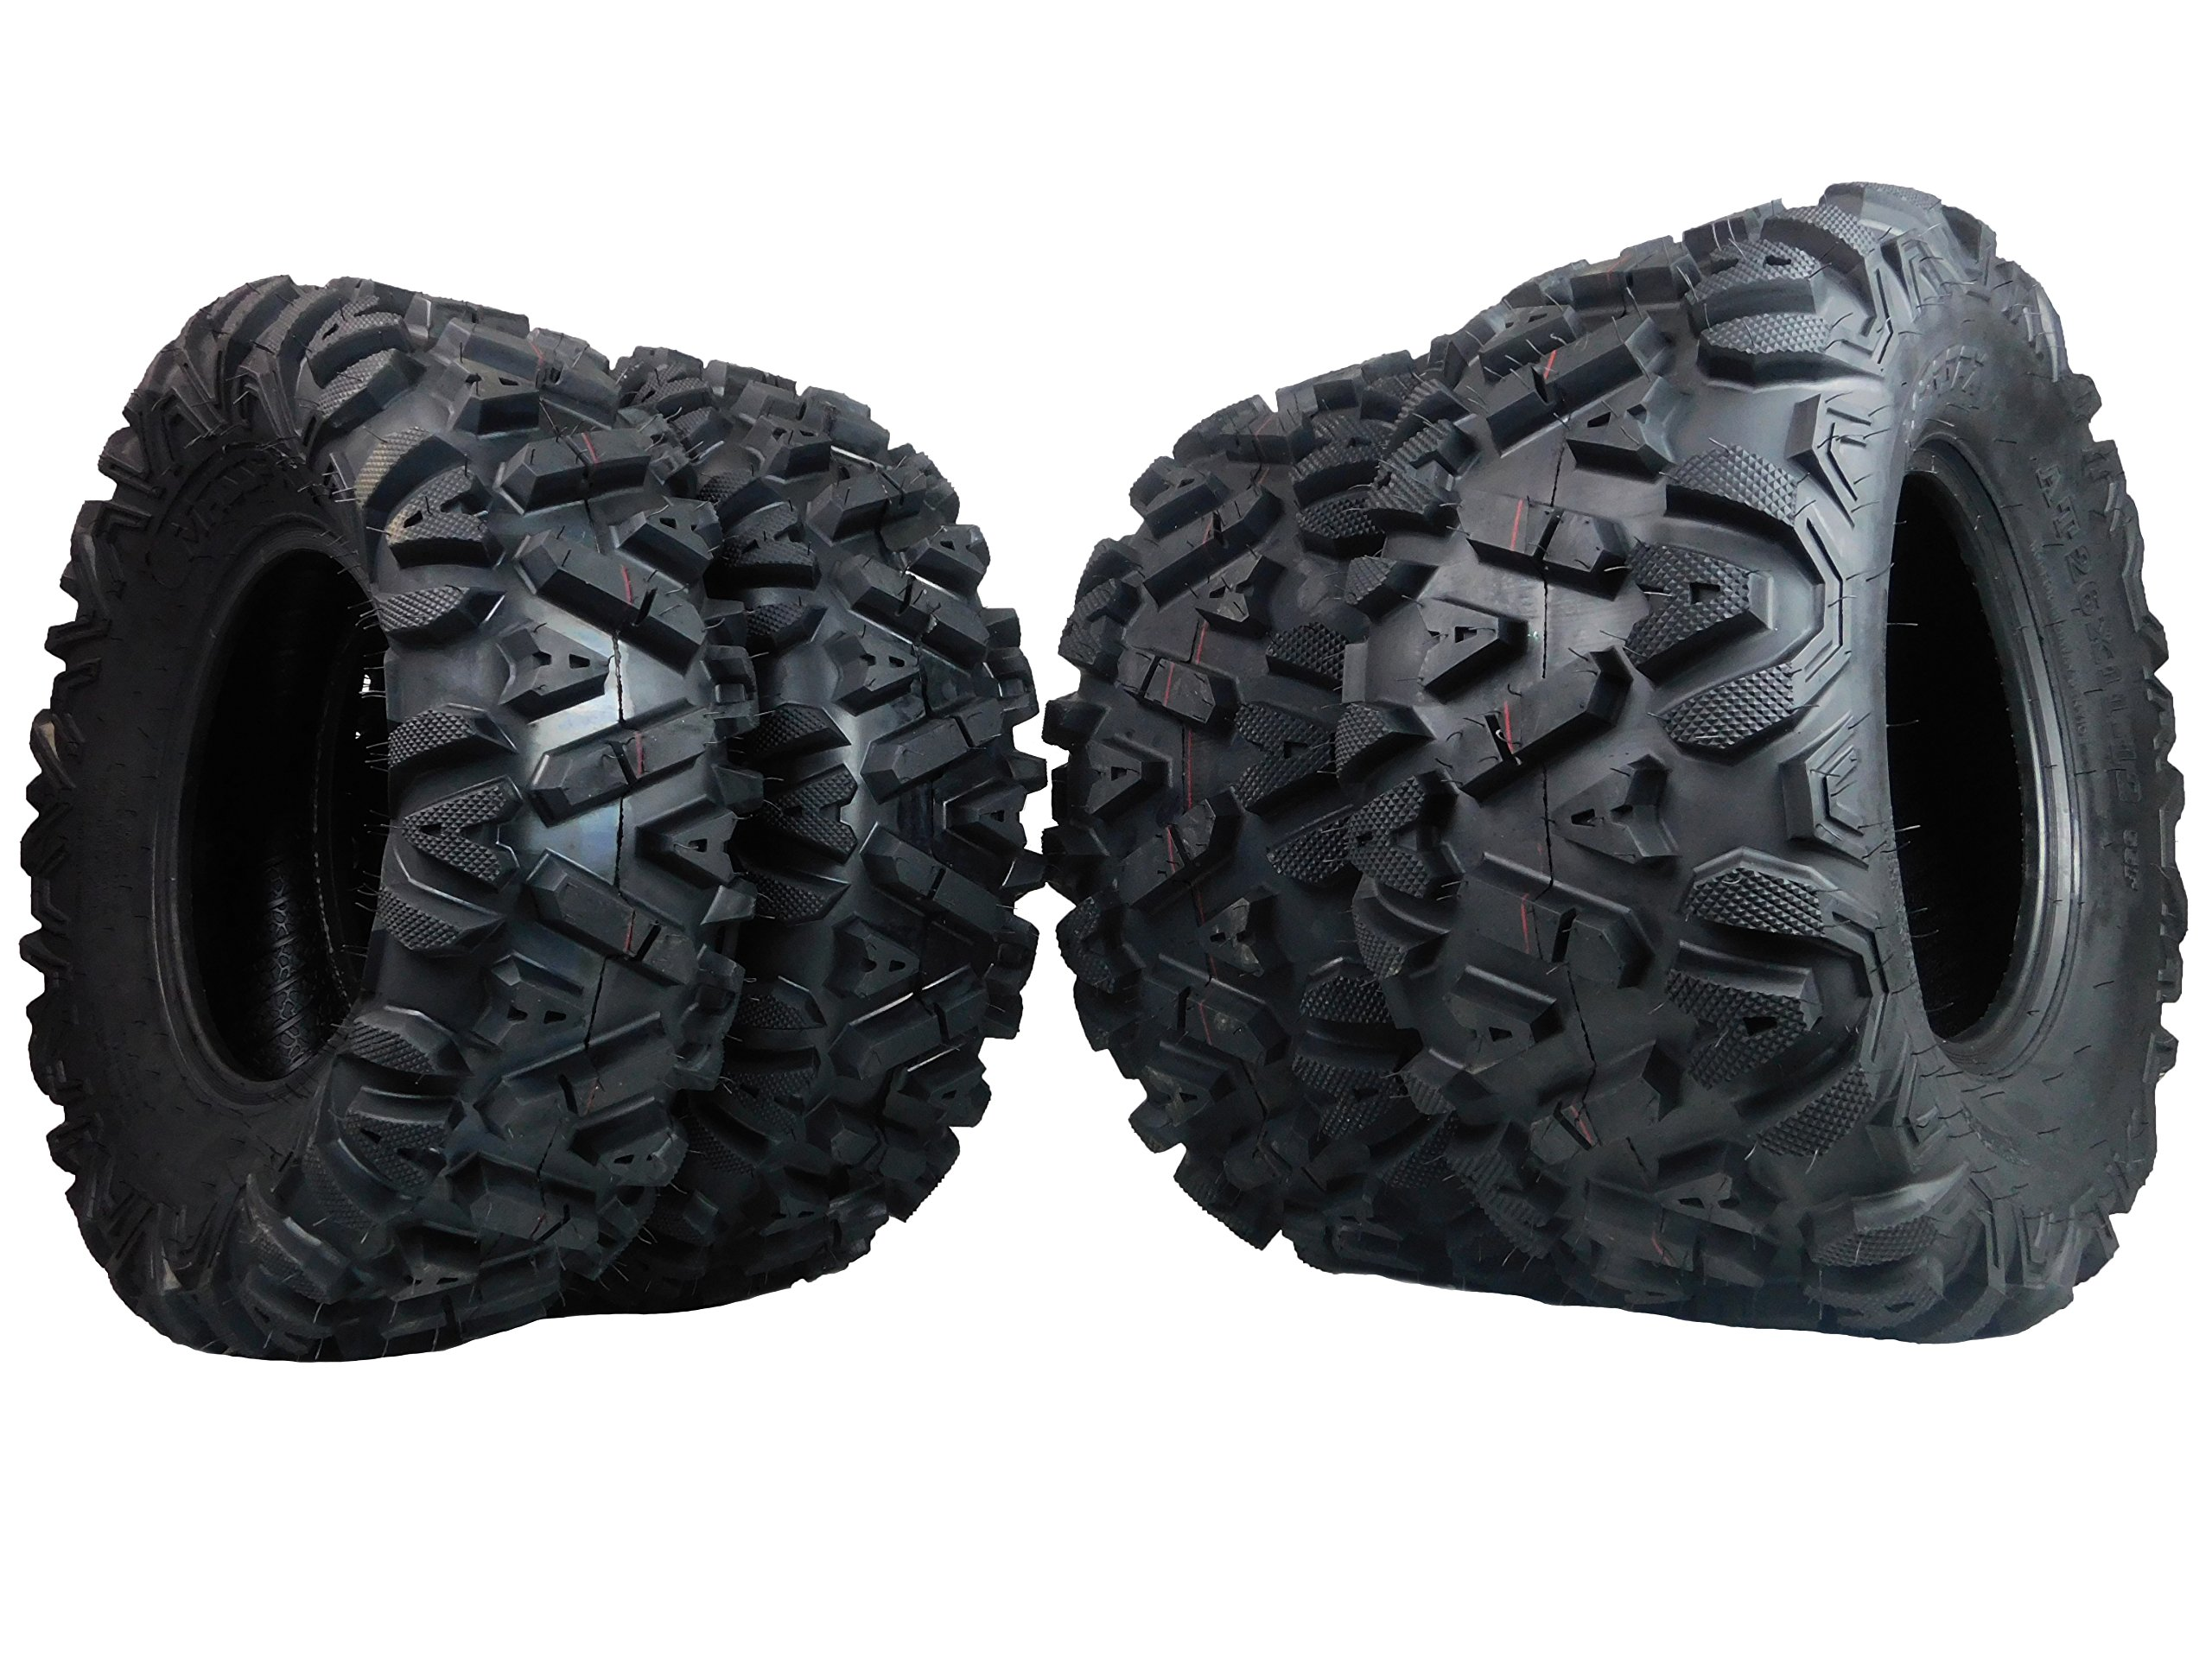 FOUR 26x9-12 26x11-12 KT MASSFX big TIRE SET FOUR ATV TIRES SIX PLY 26'' horn by MASSFX